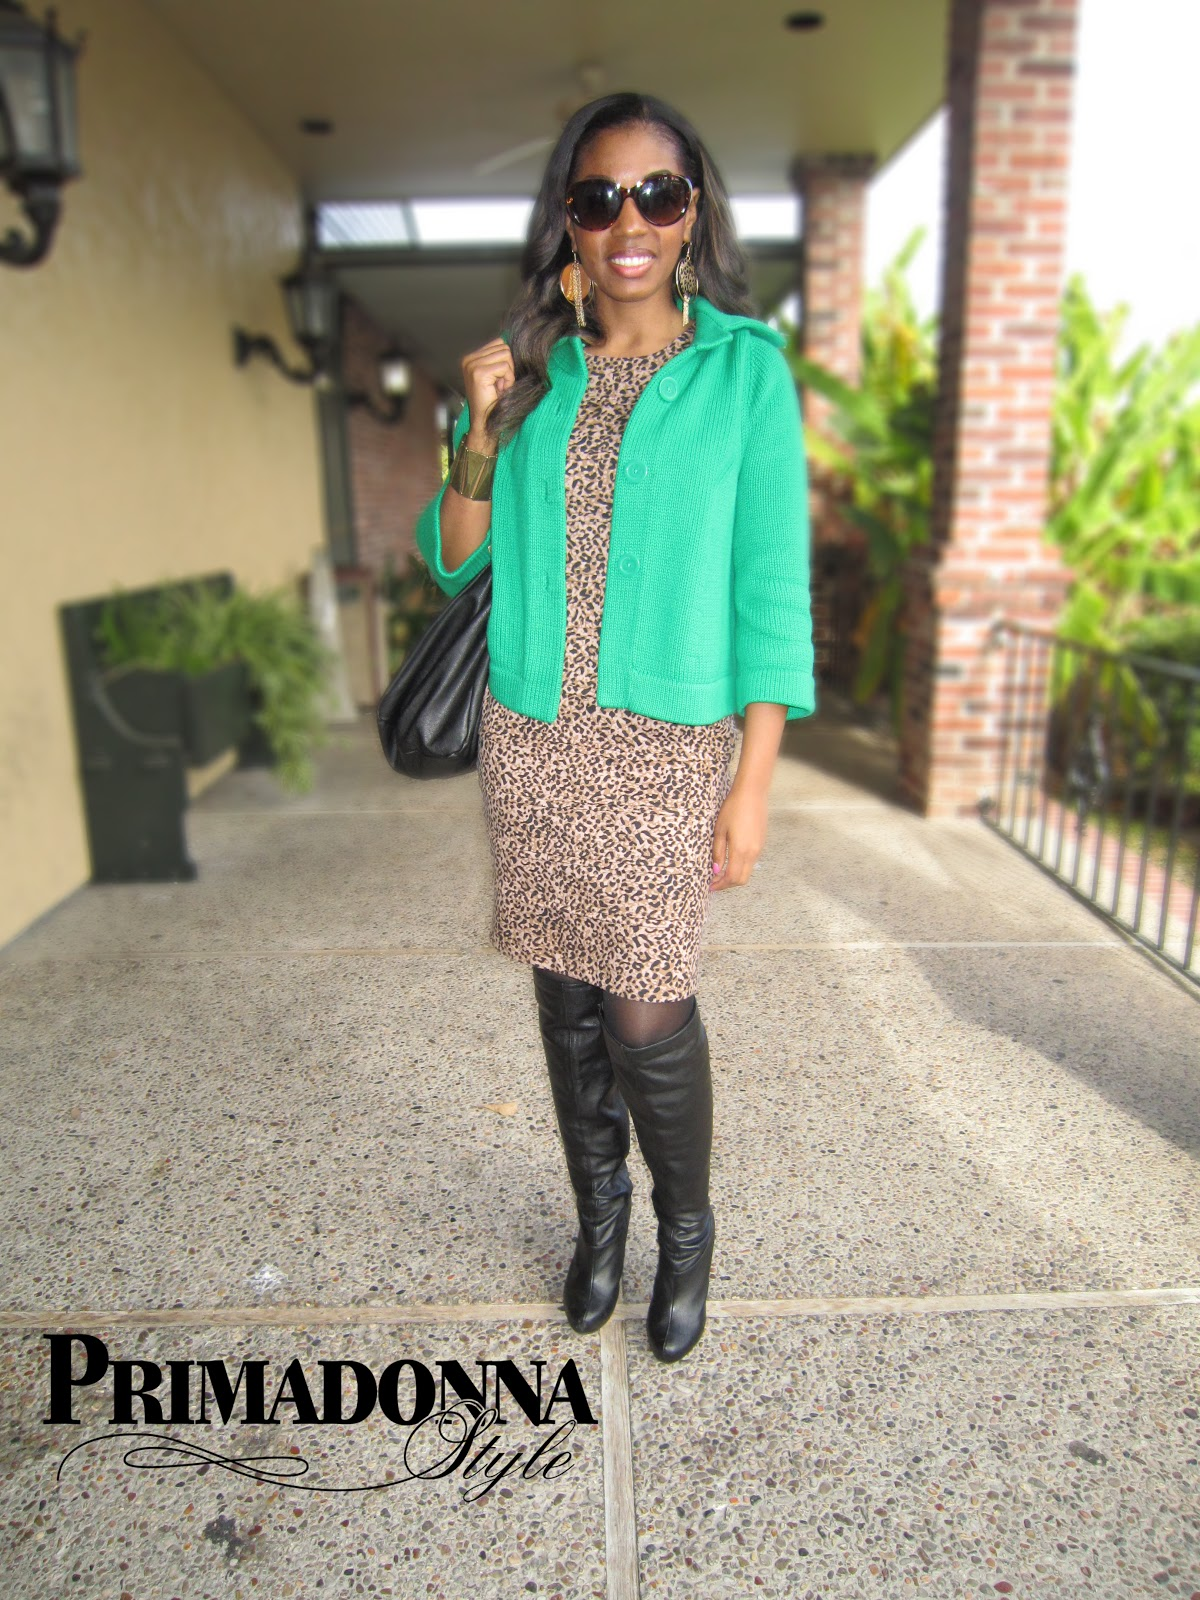 Primadonna Style: Out & About: Leopard Print and Green